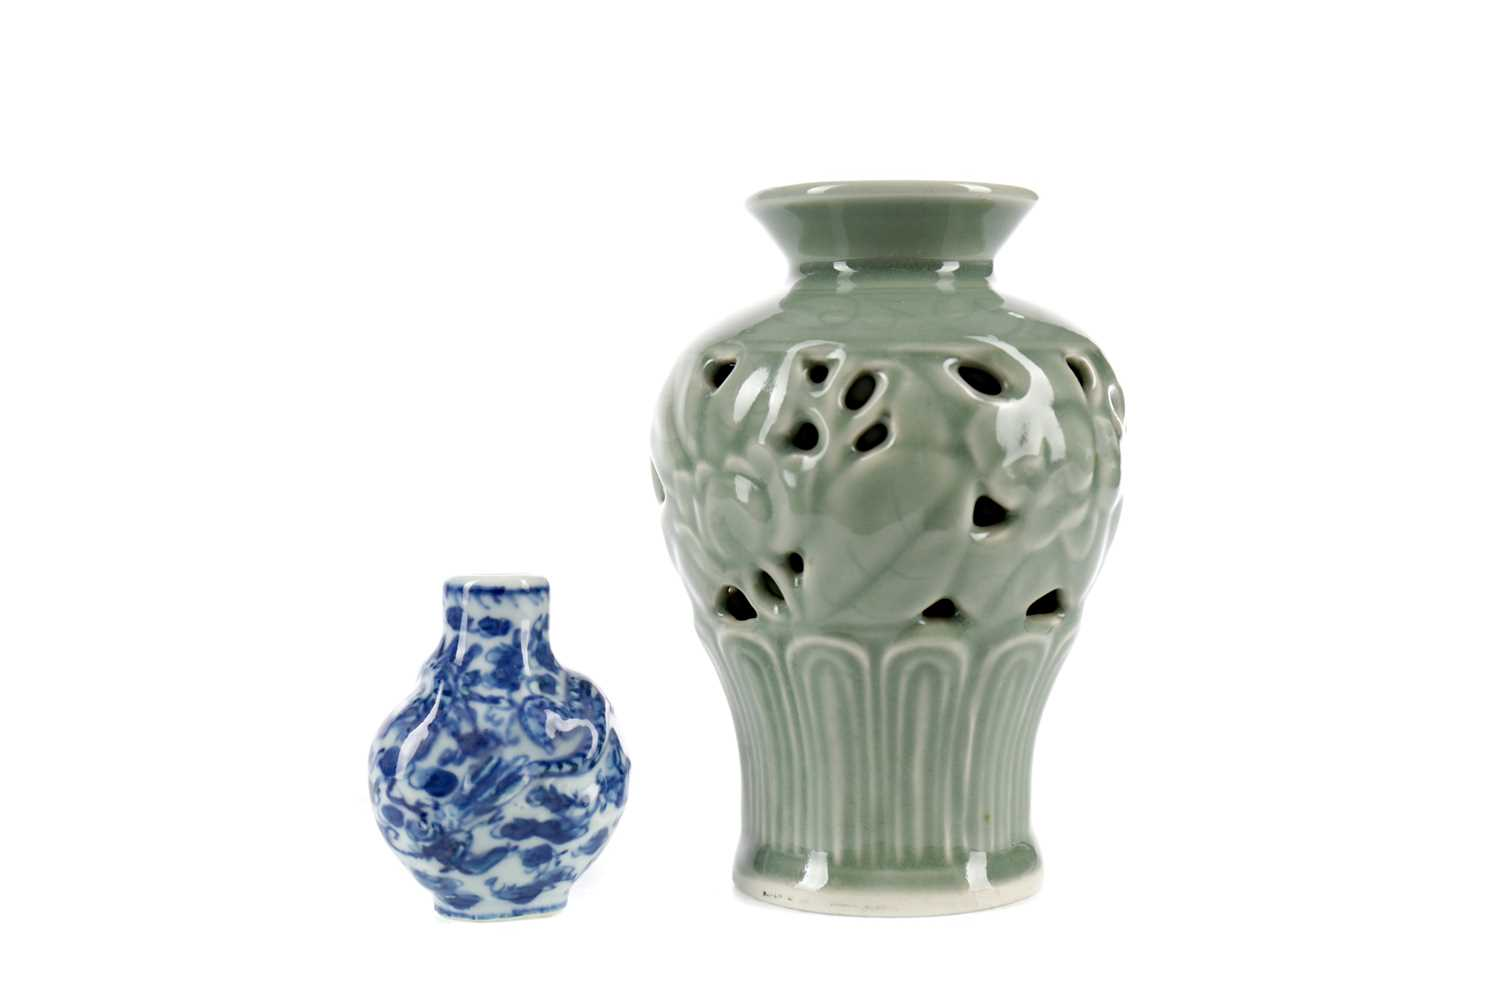 Lot 735 - A 20TH CENTURY CHINESE CELADON VASE AND A SNUFF BOTTLE